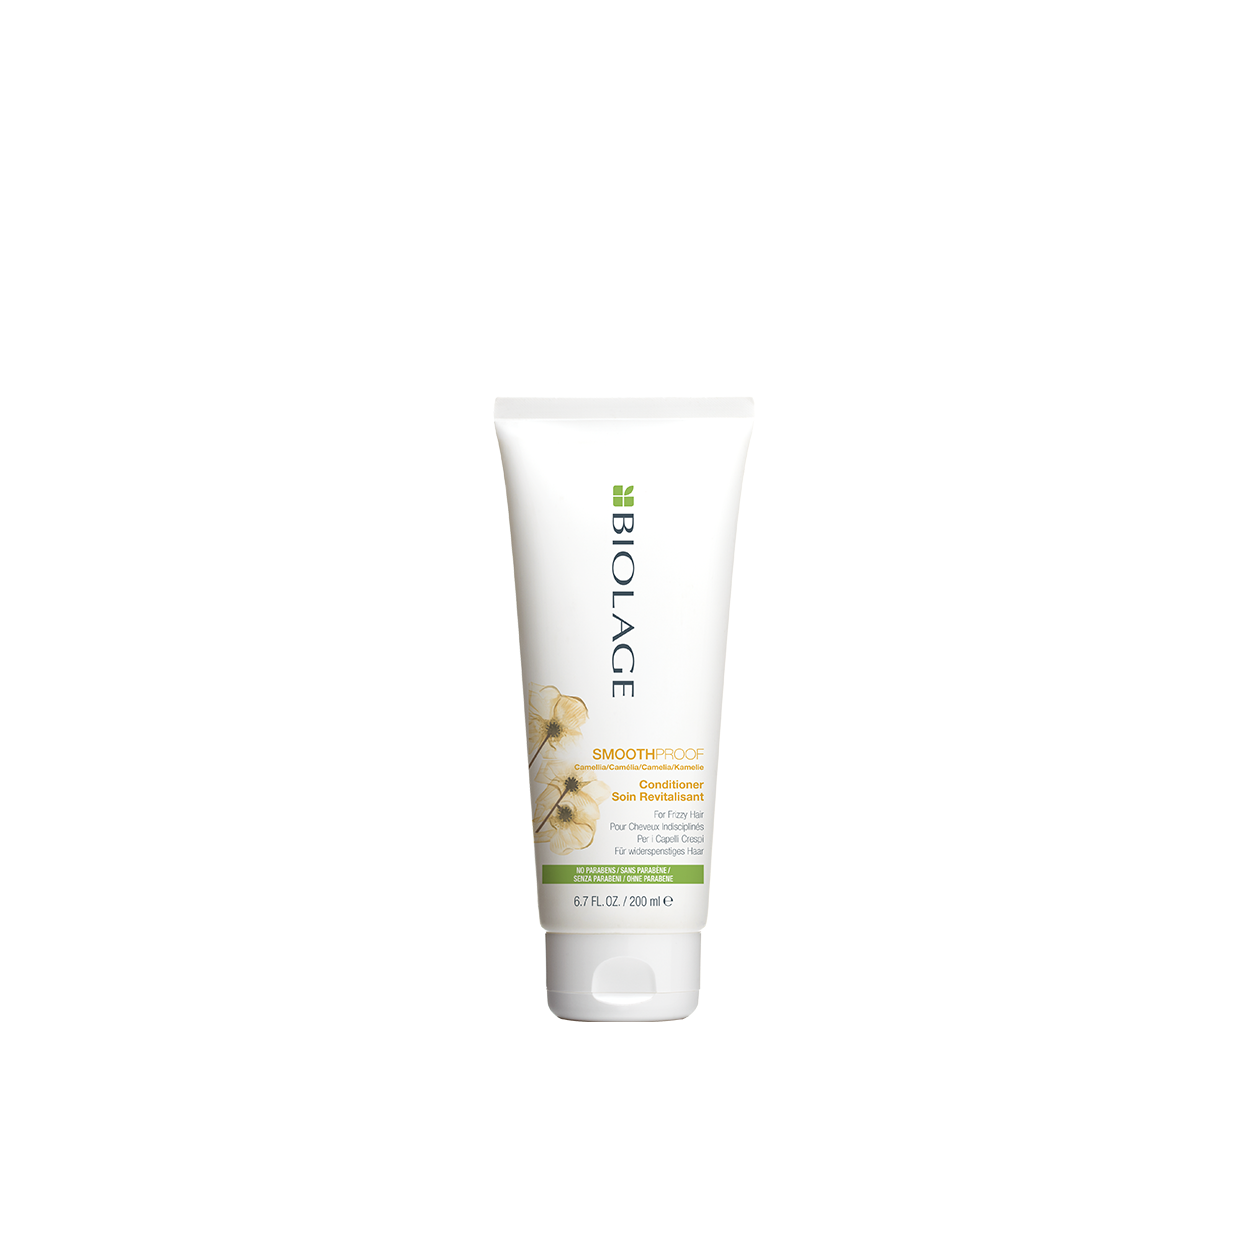 Biolage SmoothProof Conditioner Smoothing Conditioner for Frizzy Hair